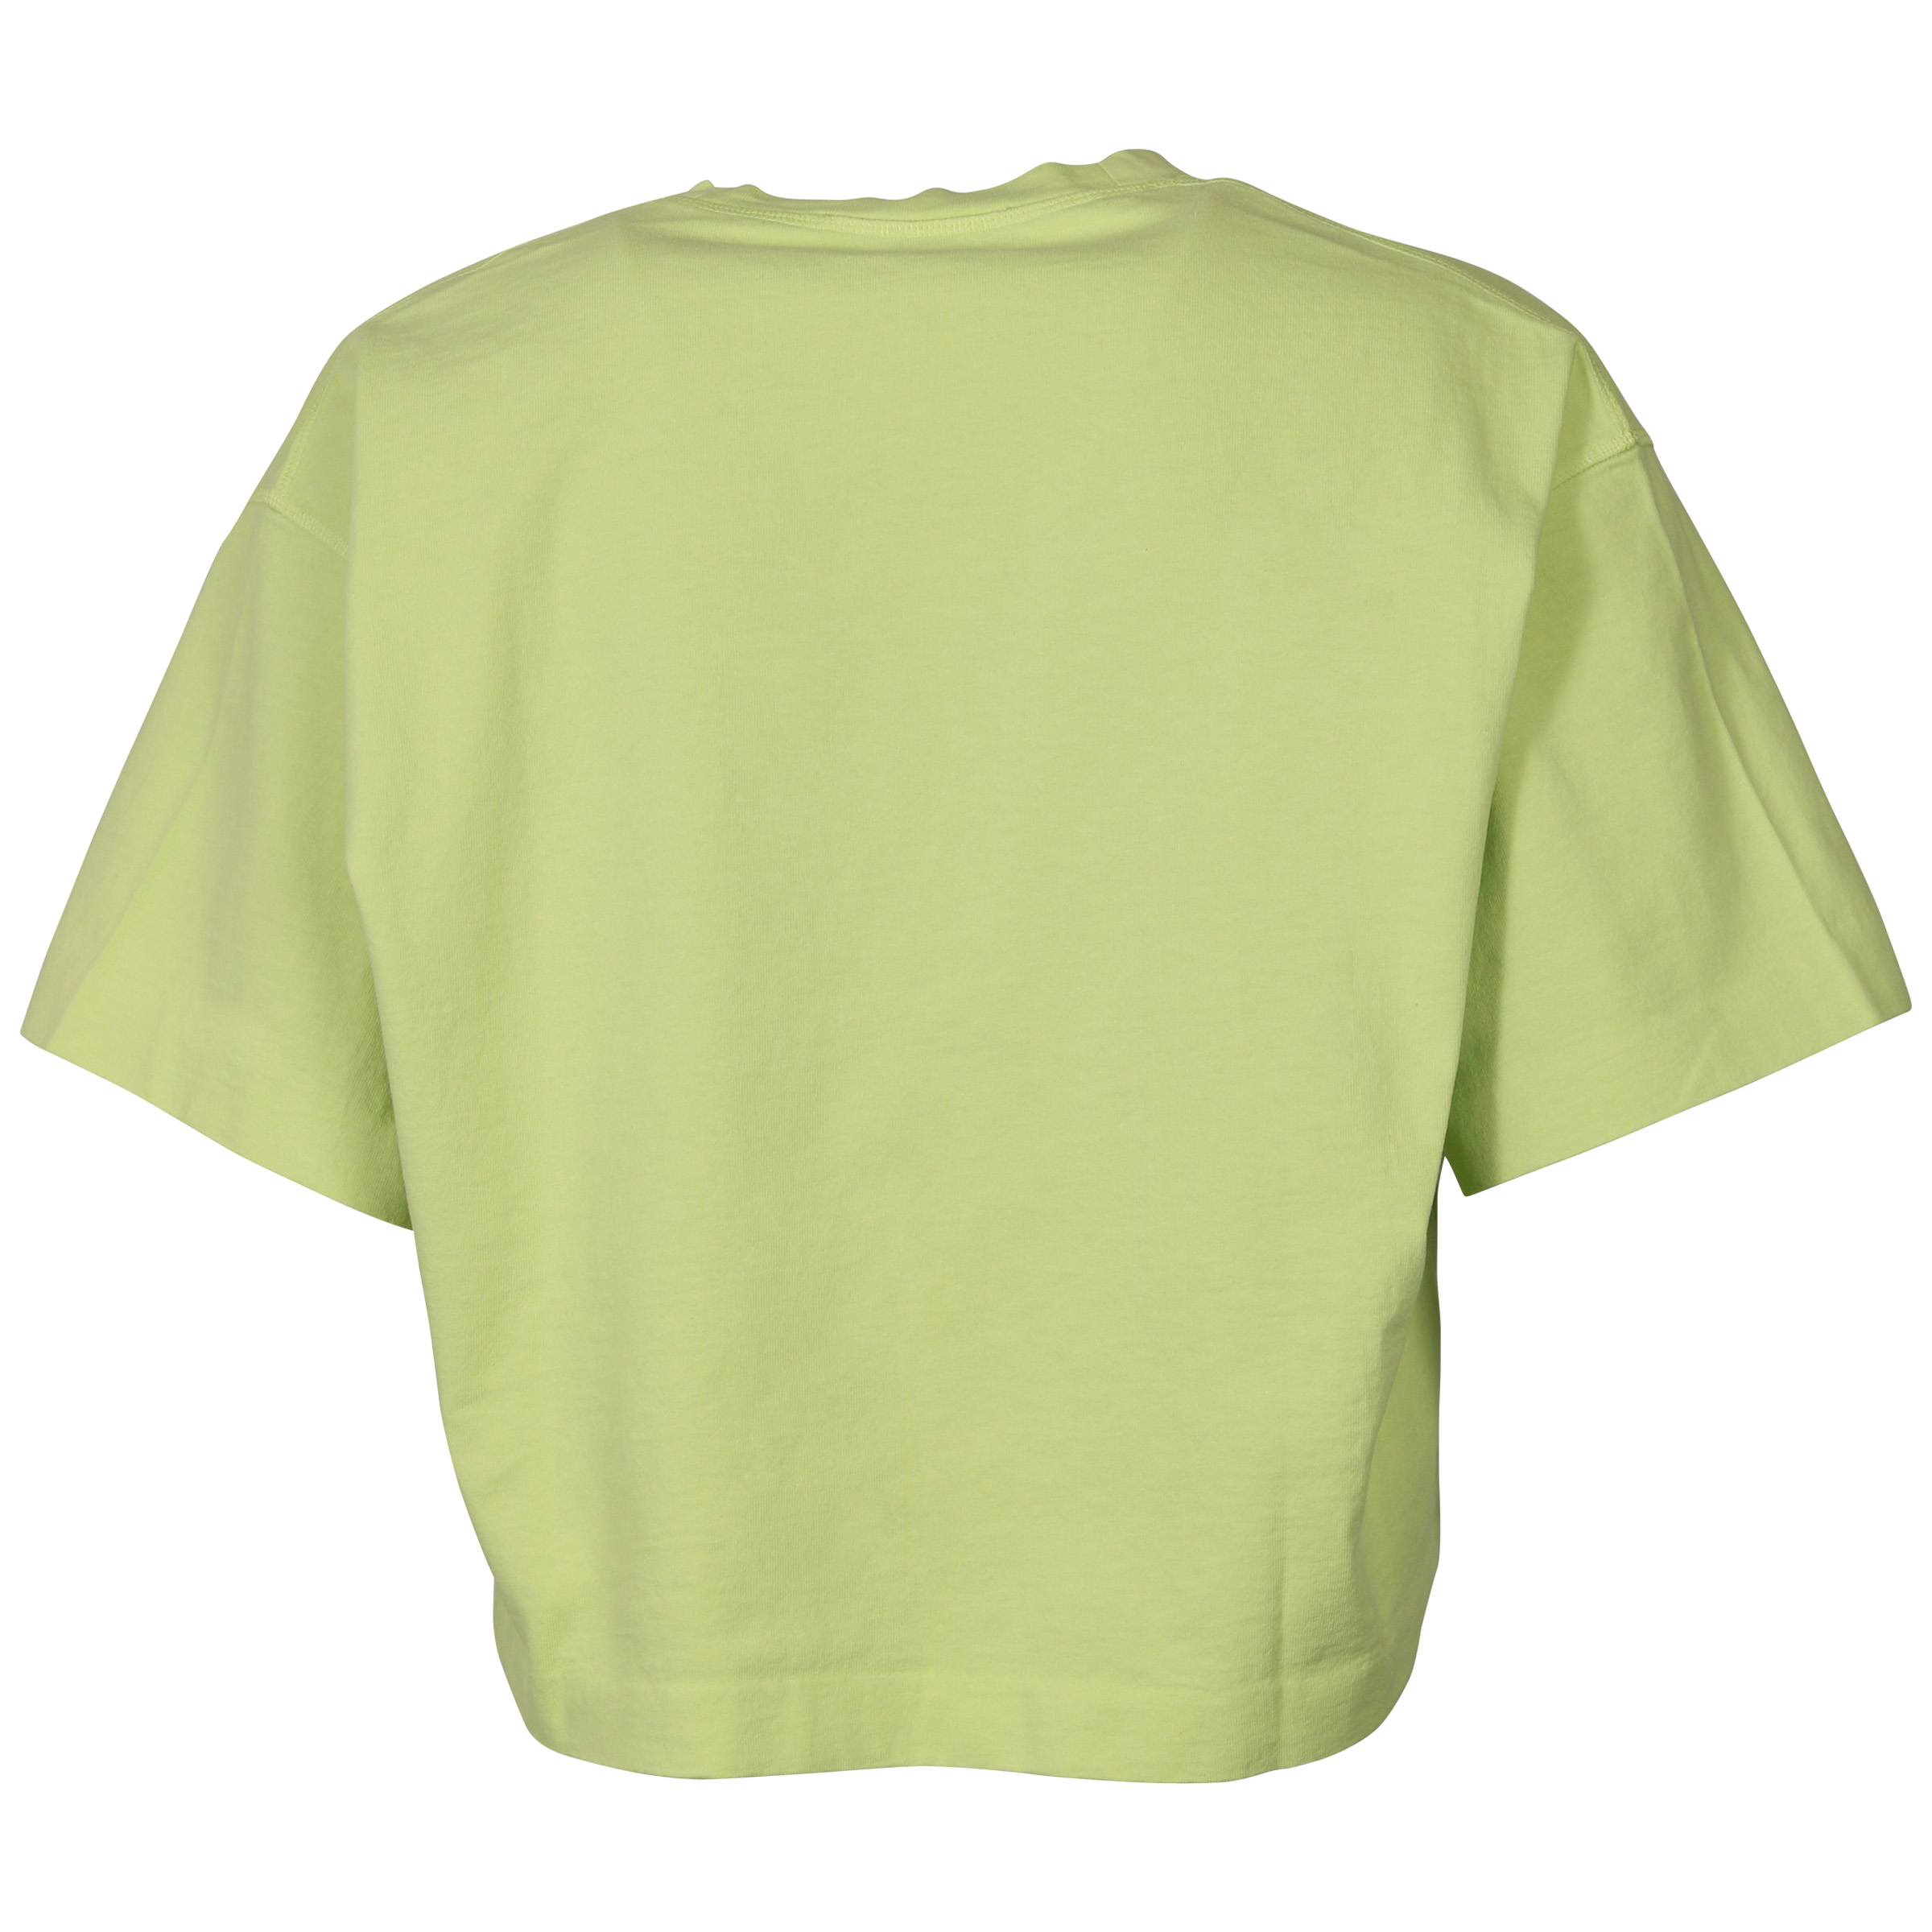 Women S Acne Studios Cropped T Shirt Cylea Lime Green Hechler Nickel